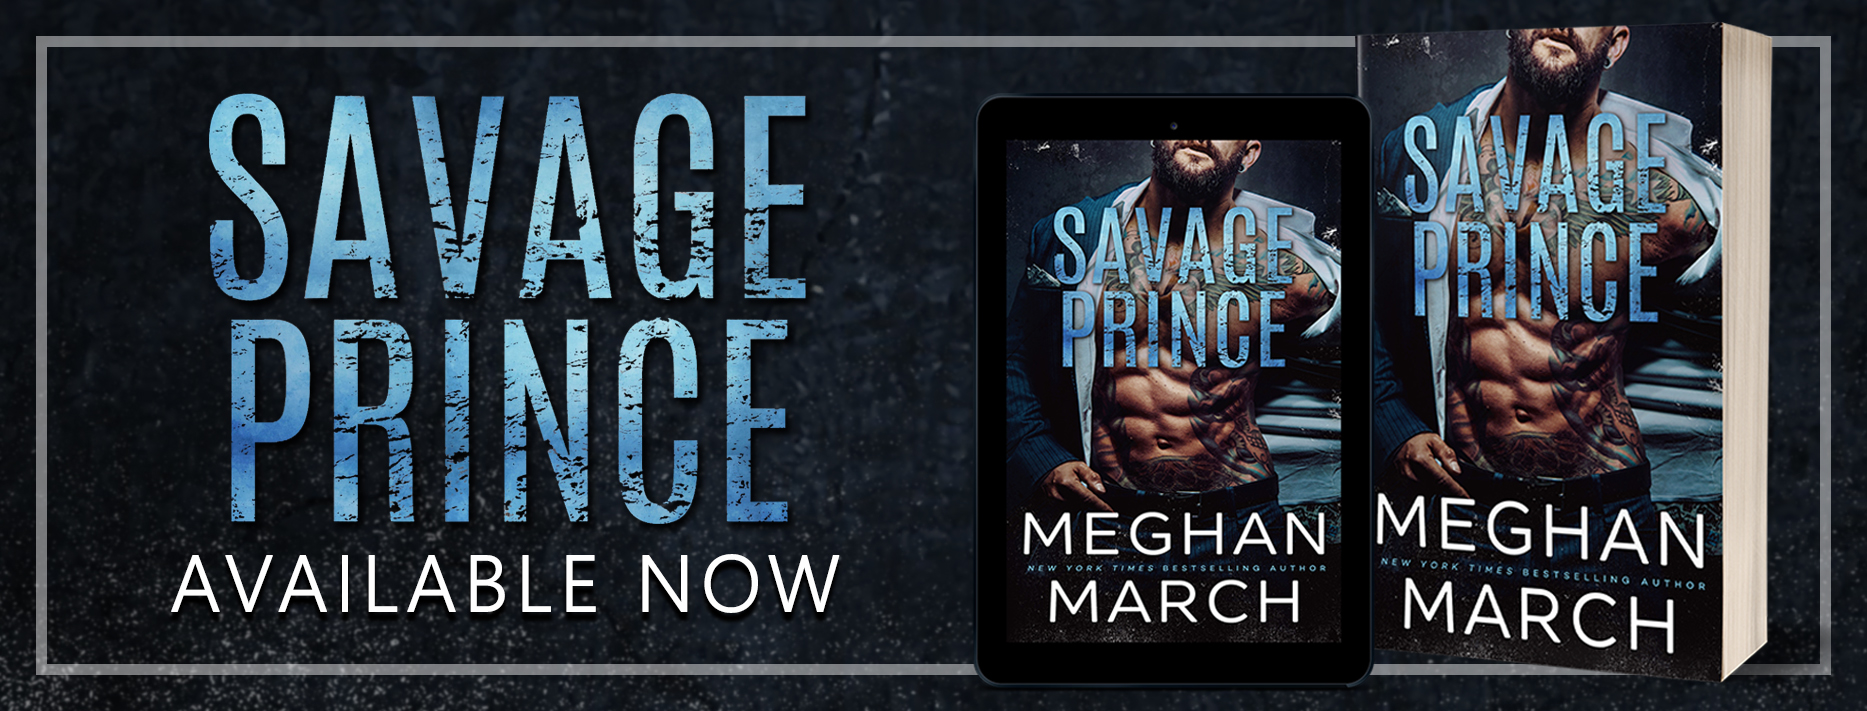 SavagePrince availnowbanner